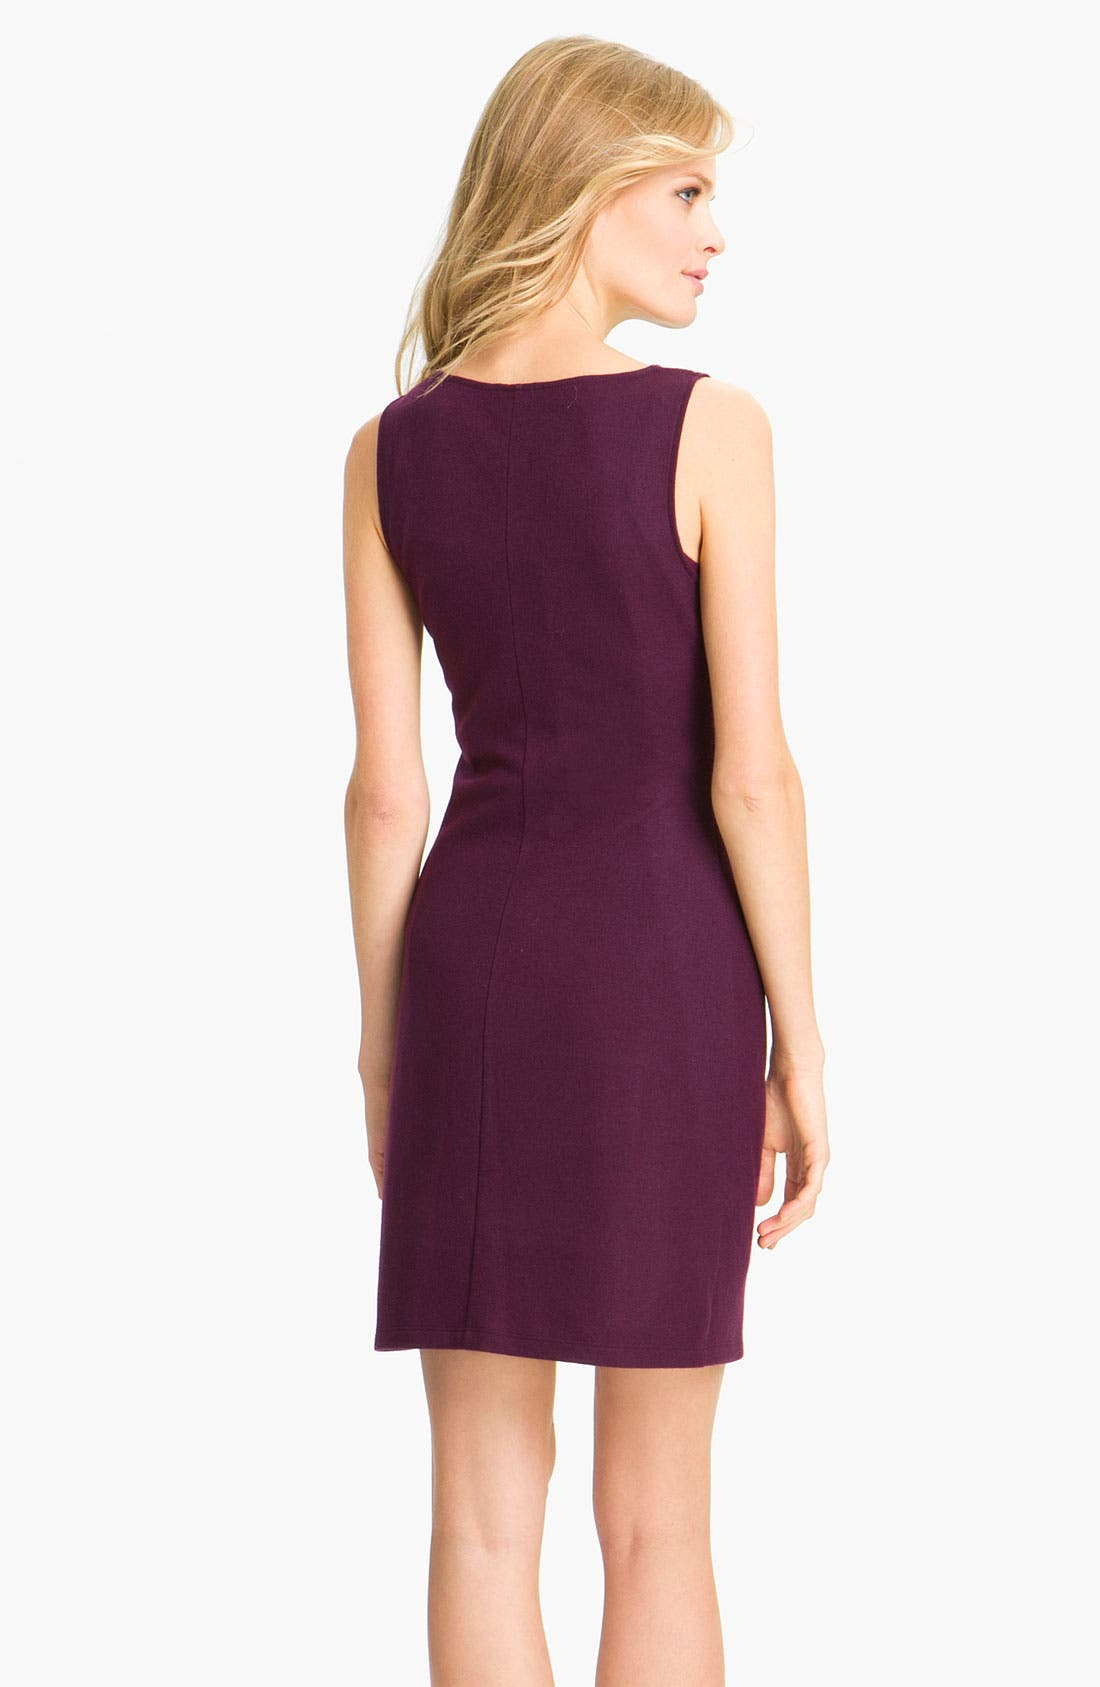 'Meily K. - Victorious' Wool Shift Dress,                             Alternate thumbnail 2, color,                             Syrah